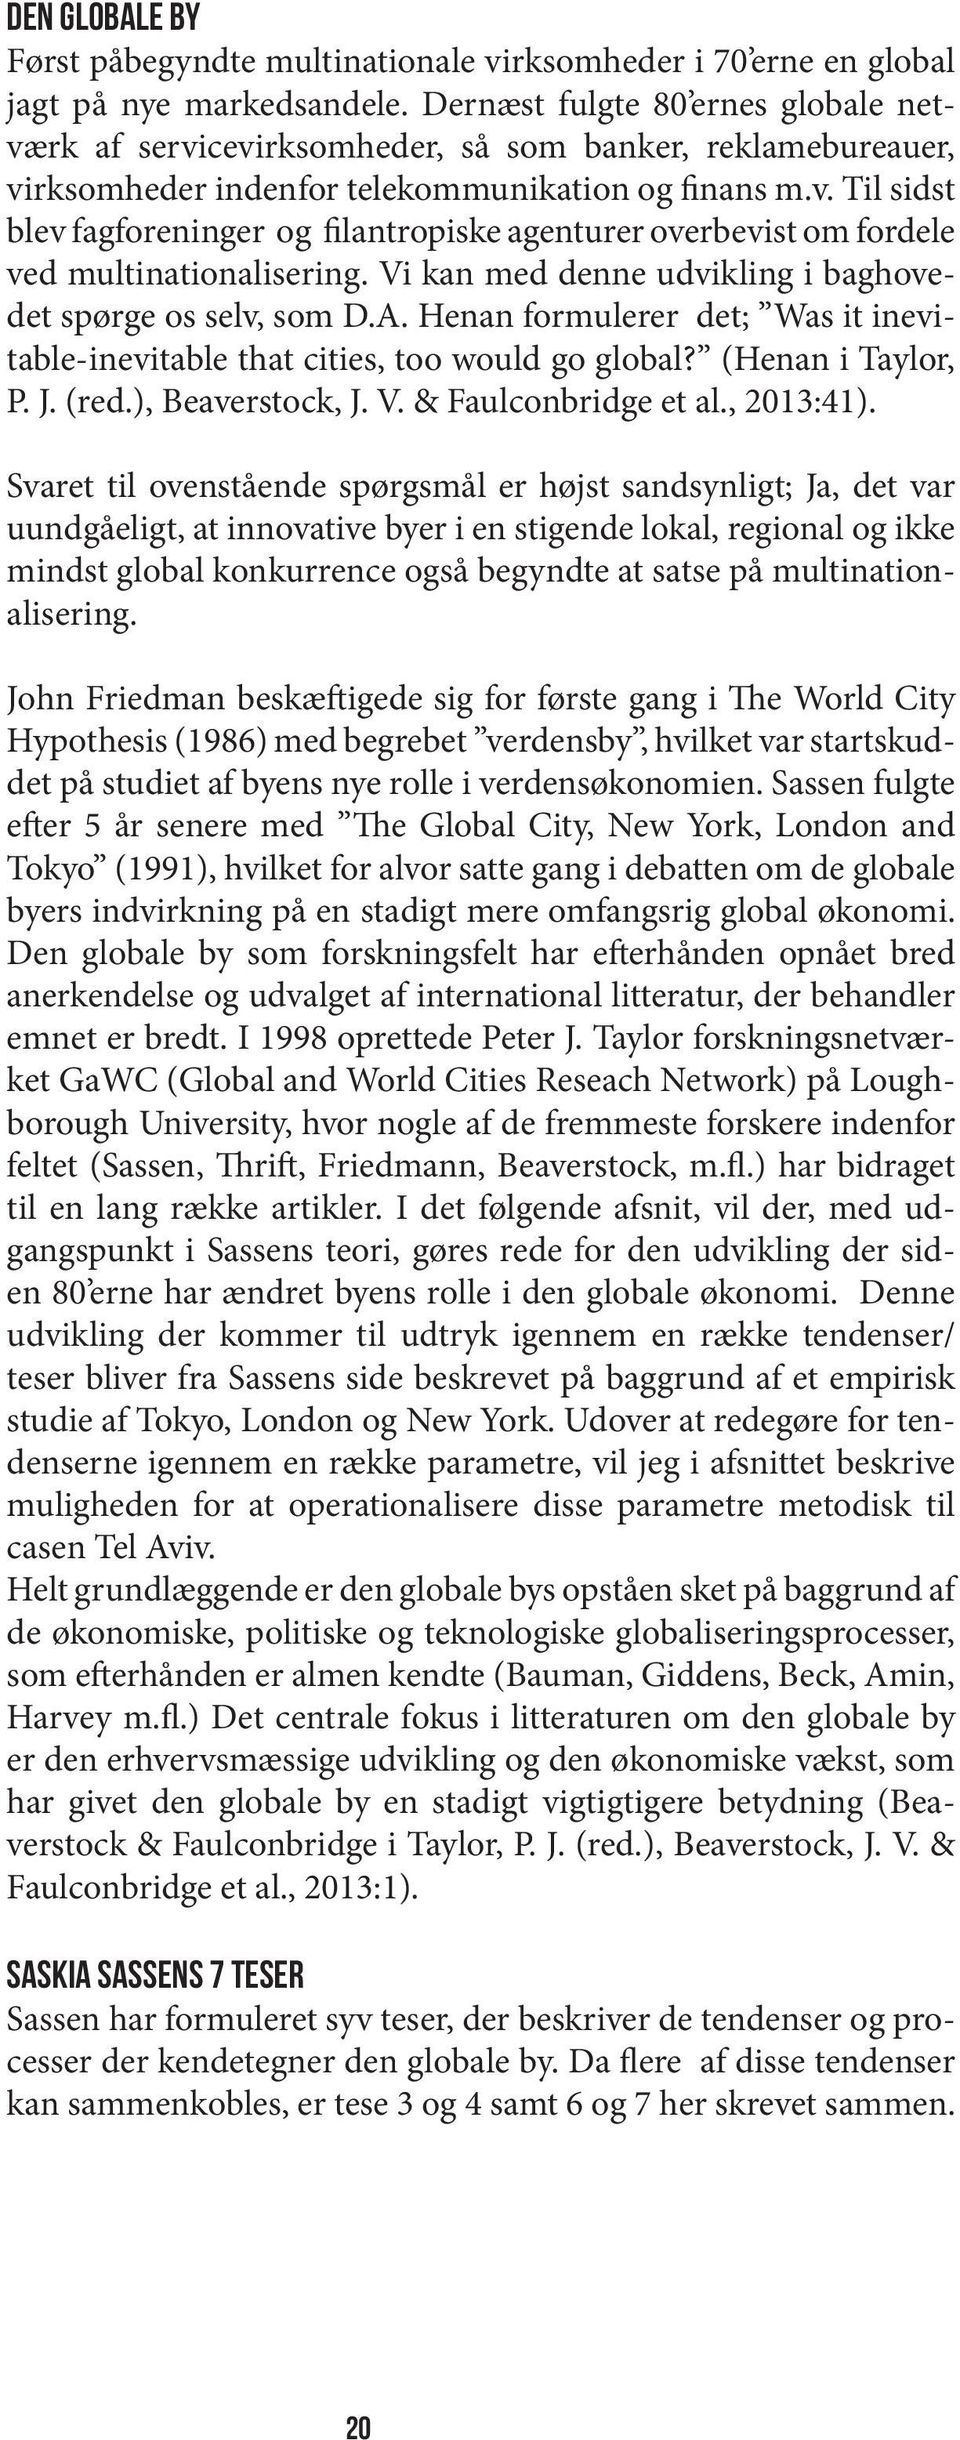 Vi kan med denne udvikling i baghovedet spørge os selv, som D.A. Henan formulerer det; Was it inevitable-inevitable that cities, too would go global? (Henan i Taylor, P. J. (red.), Beaverstock, J. V.